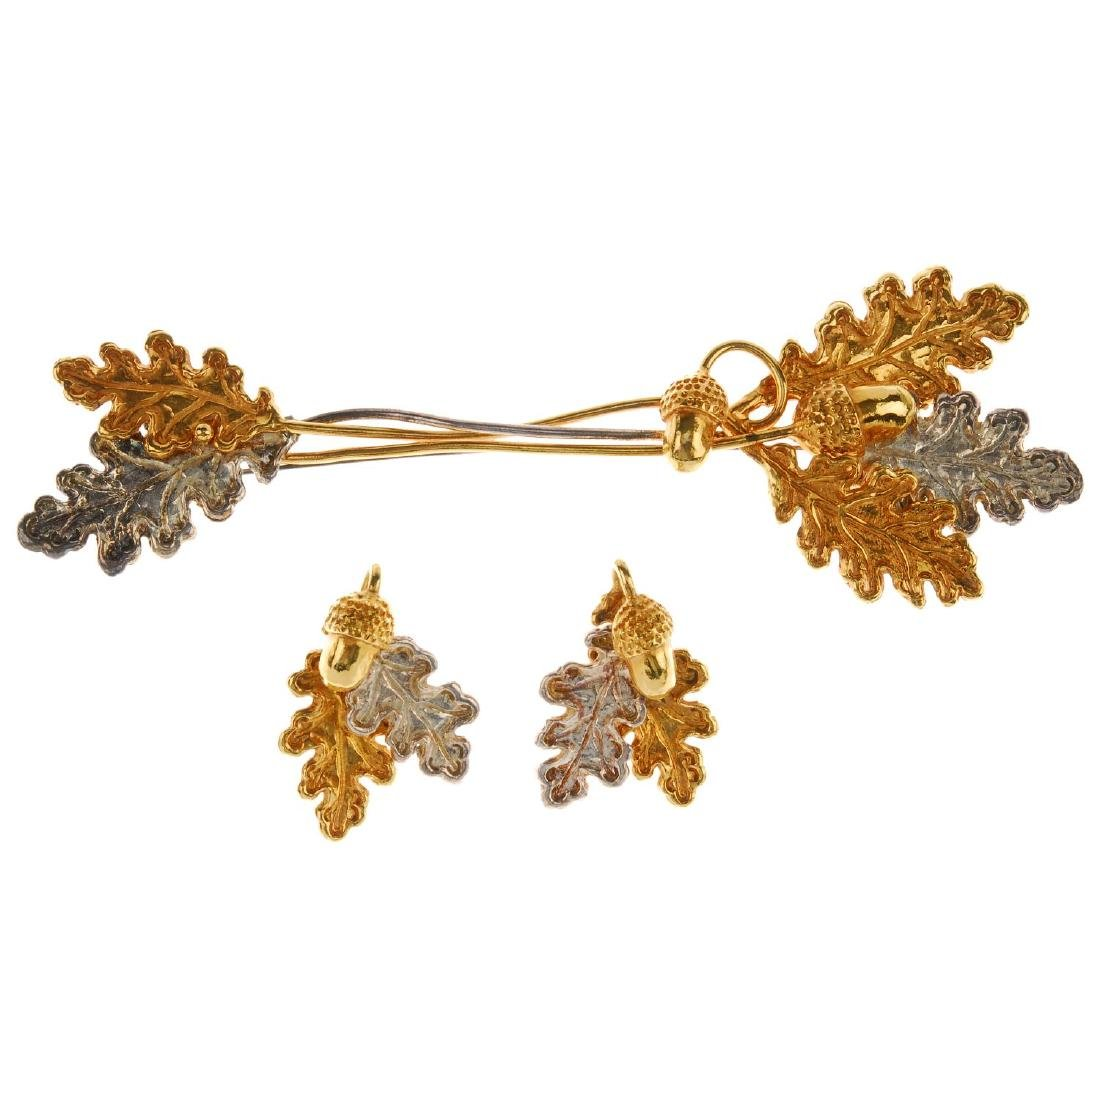 A selection of costume jewellery. To include a pair of